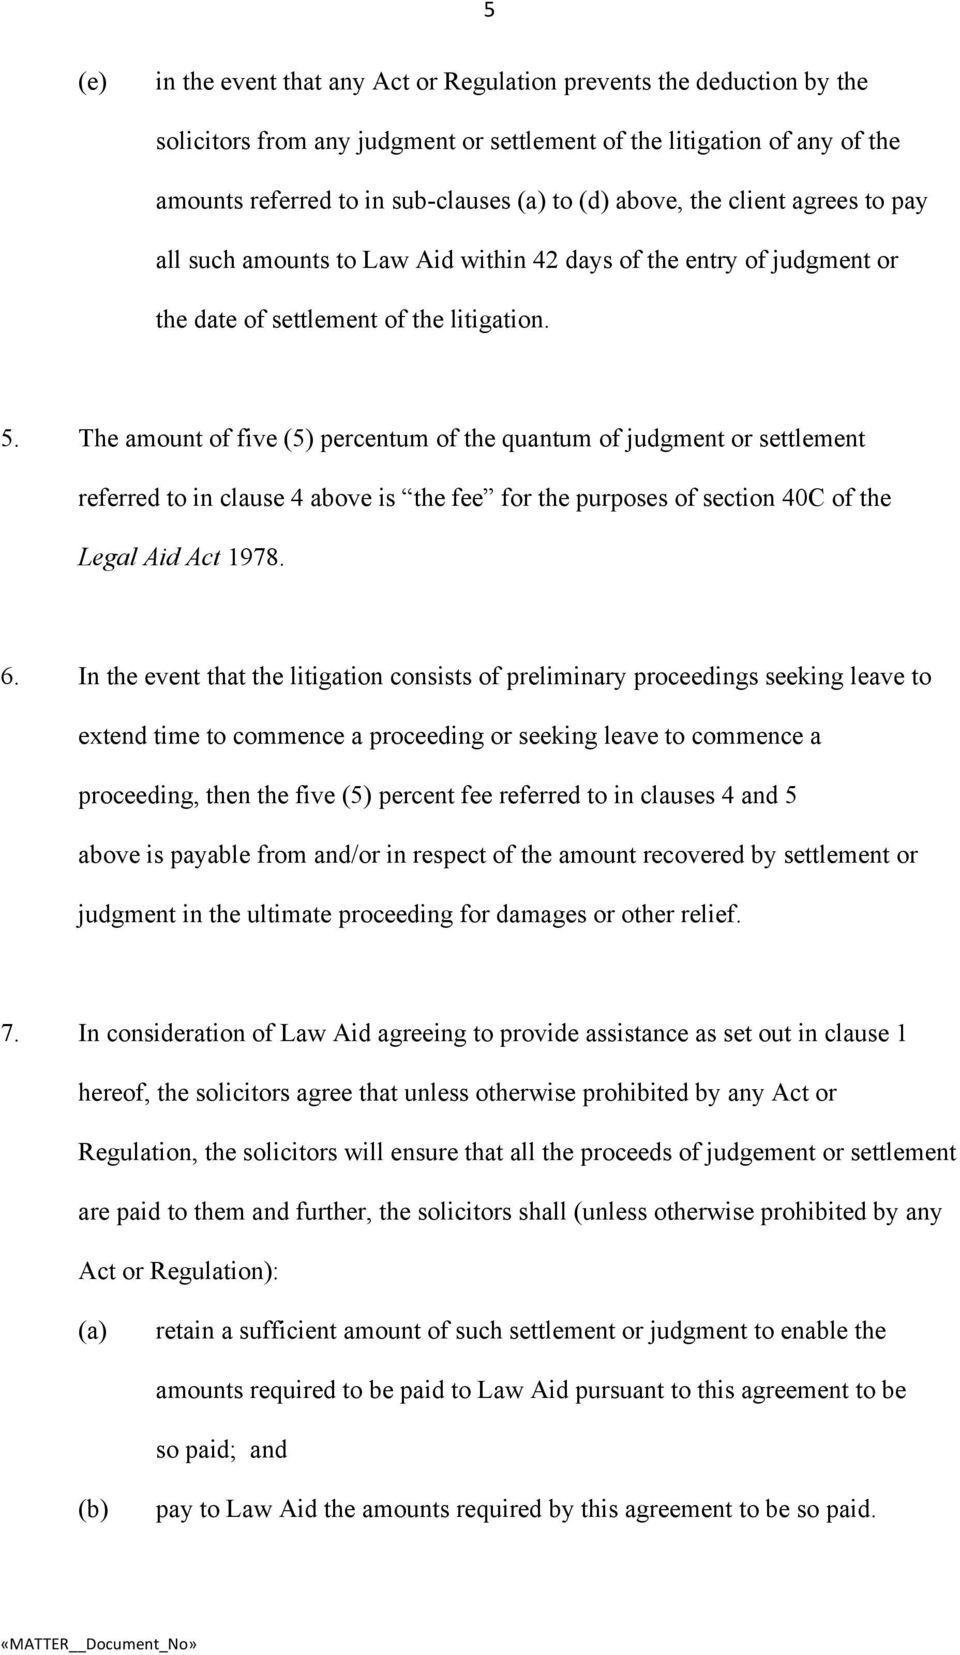 The amount of five (5) percentum of the quantum of judgment or settlement referred to in clause 4 above is the fee for the purposes of section 40C of the Legal Aid Act 1978. 6.